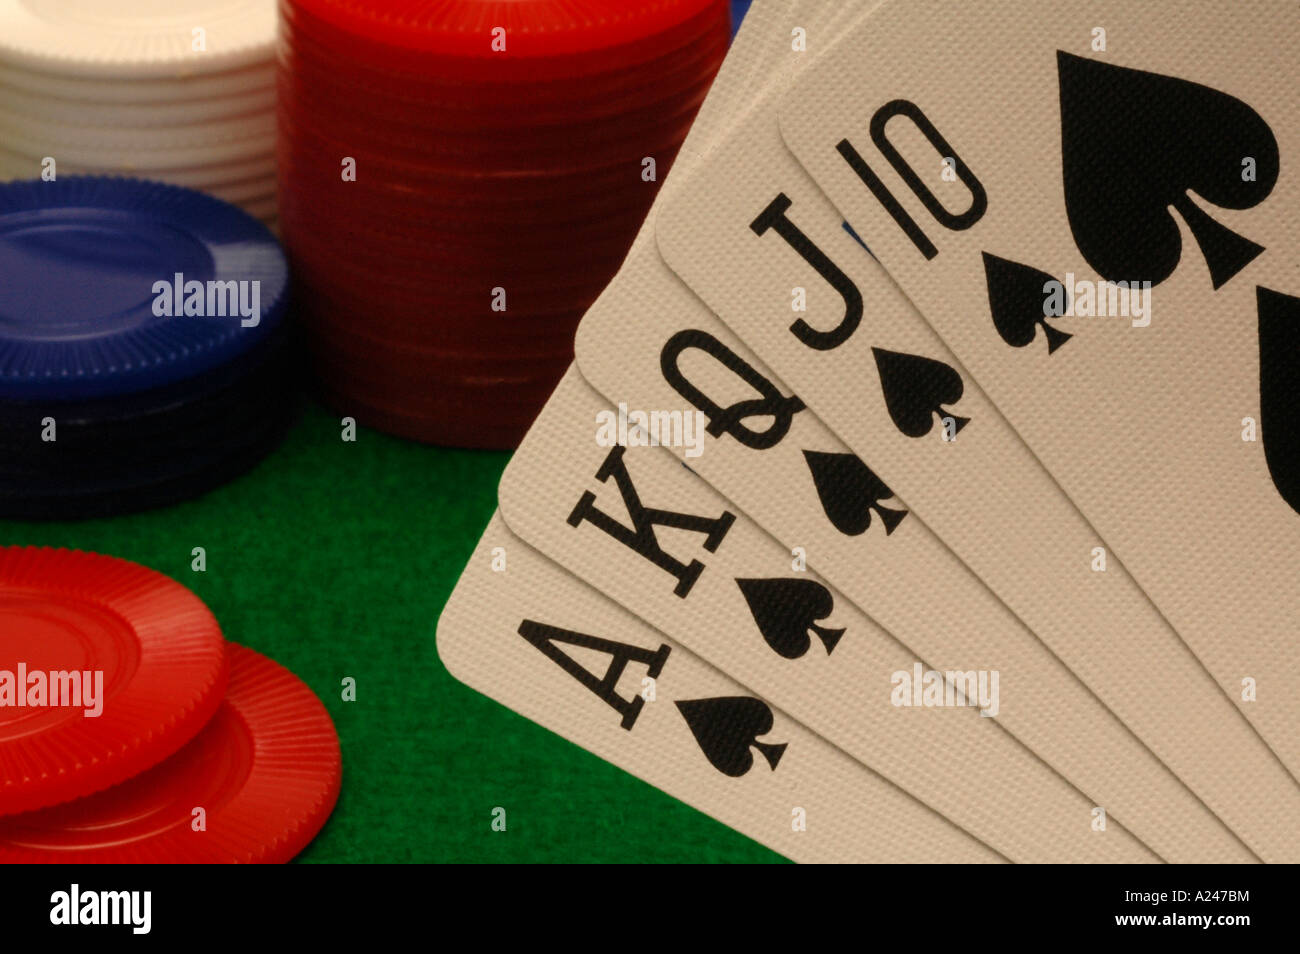 Cards and poker chips on a green felt gambling table - Stock Image